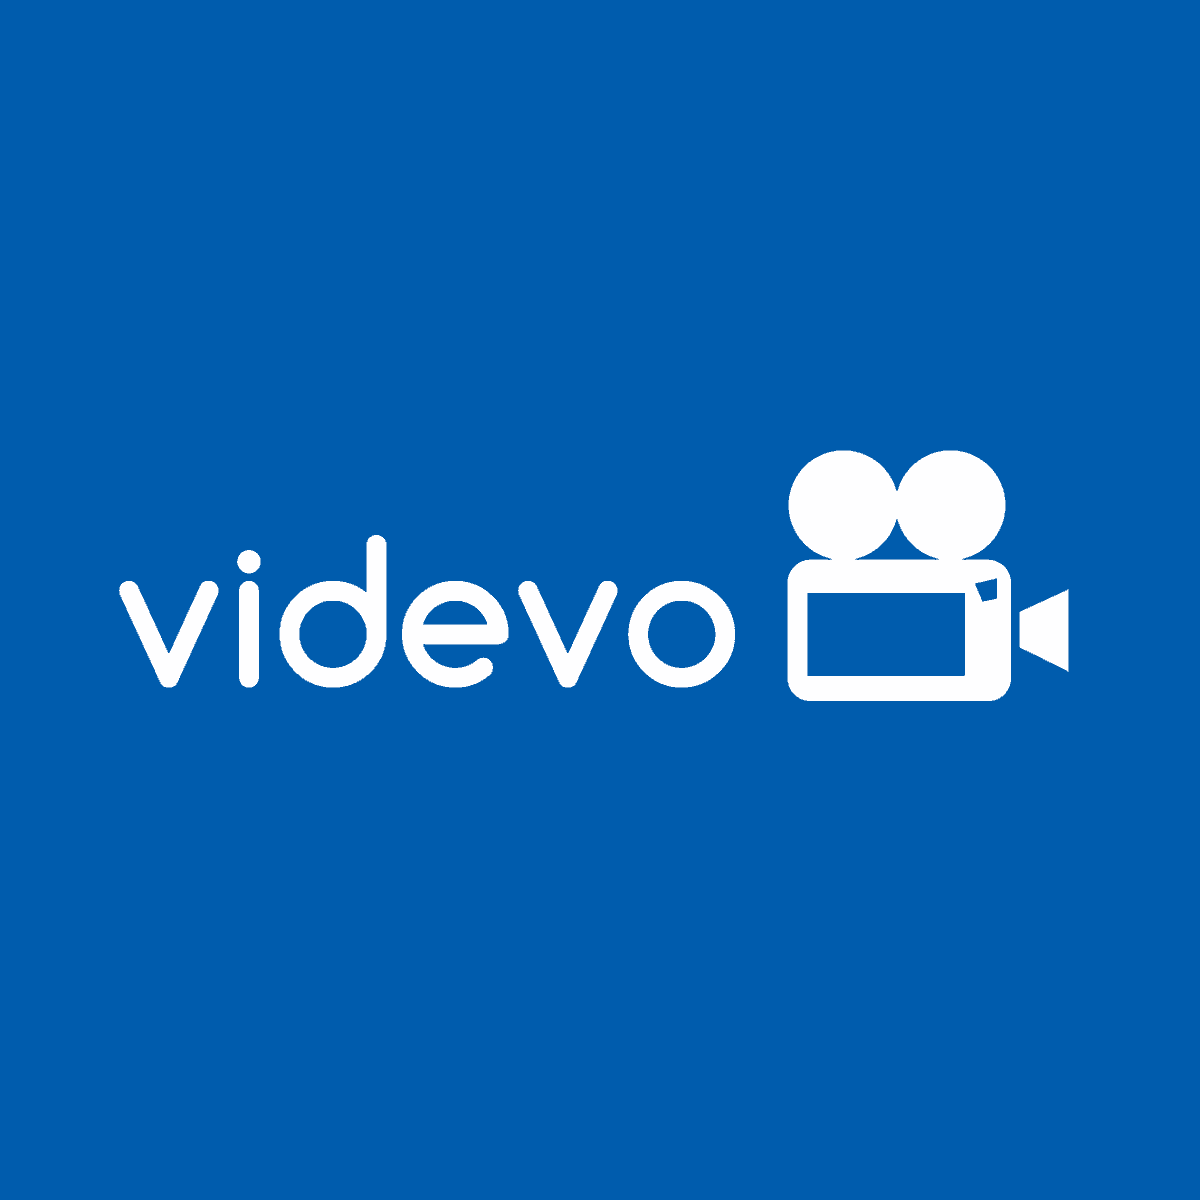 Stock Footage Video Buyer's Guide - Footage Secrets 21